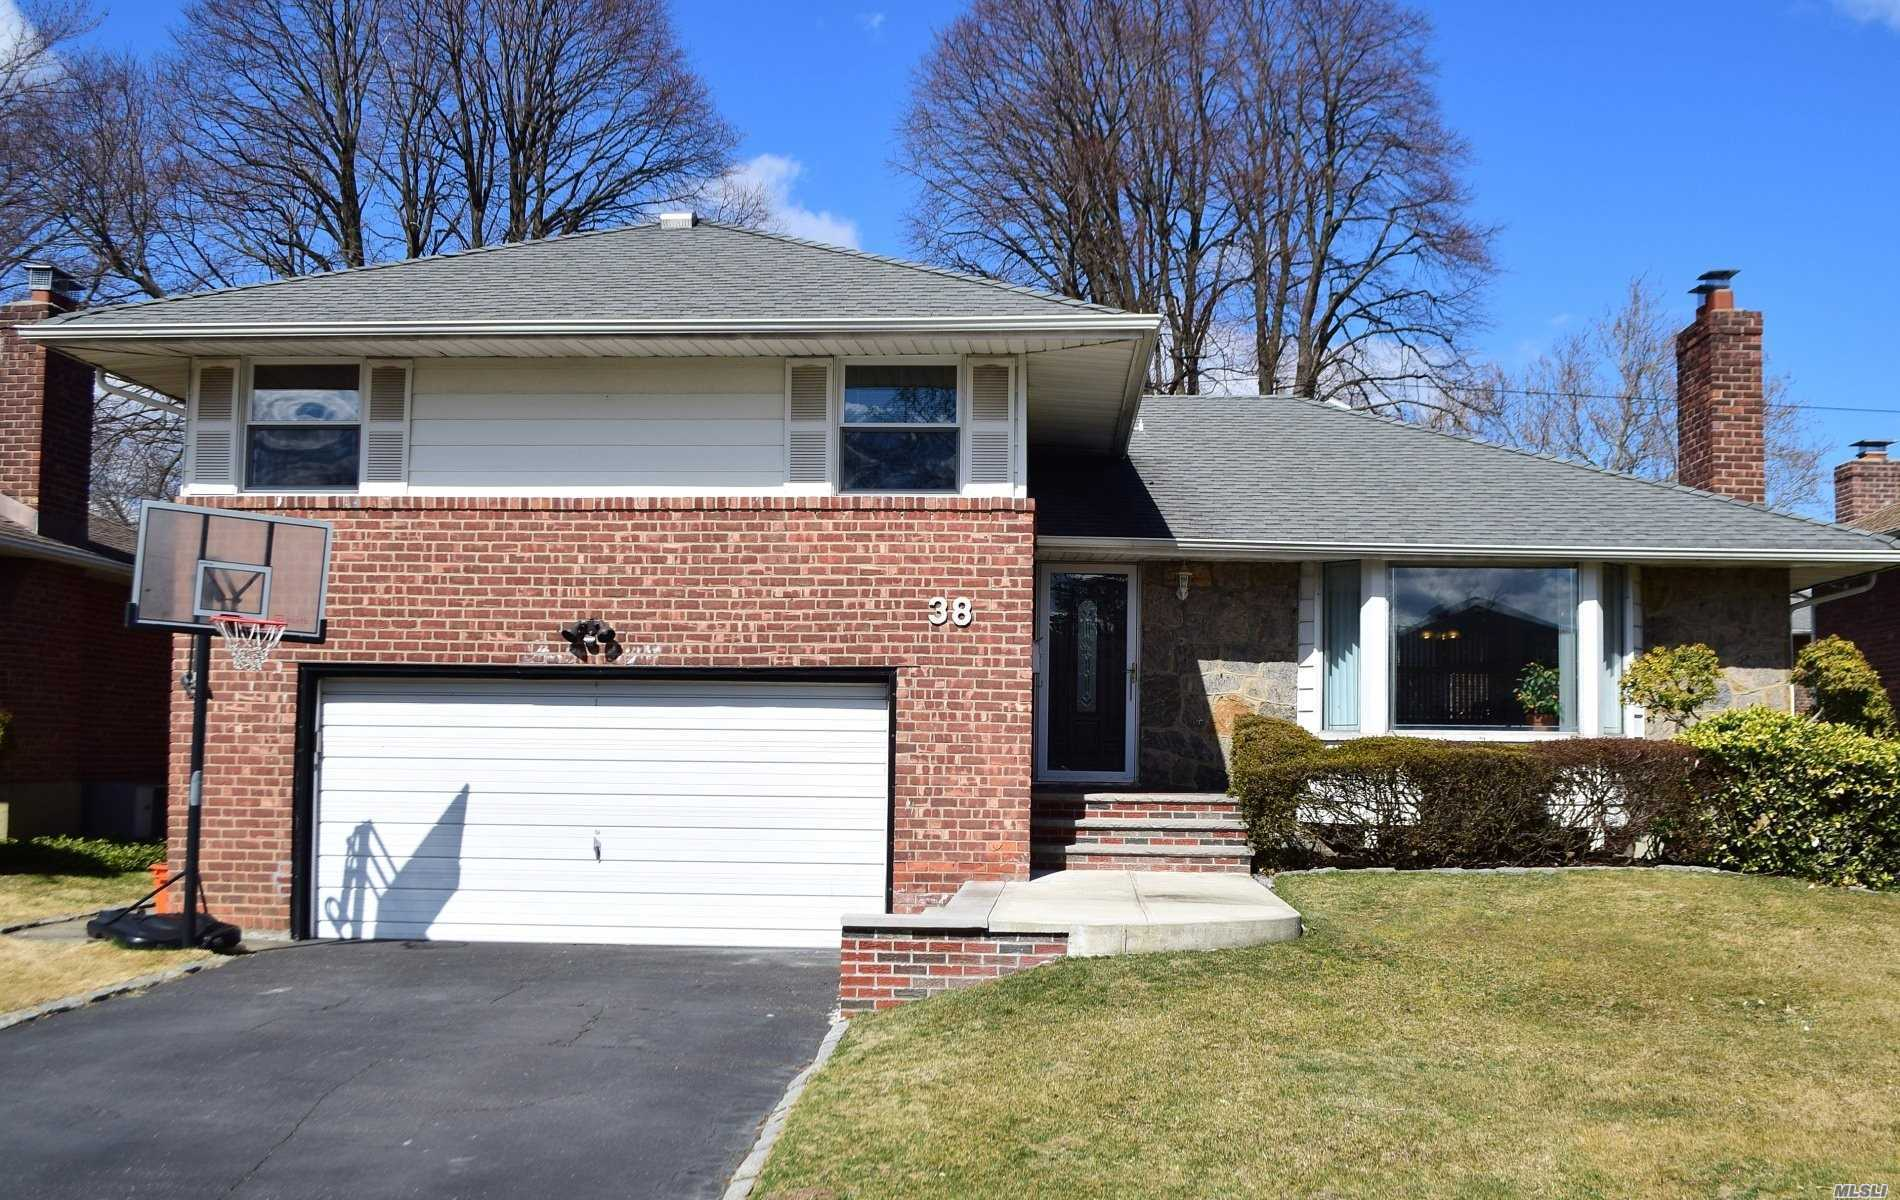 This beautiful Split Level Home in Herricks school district. Features 3 Bedroom, 2.5 baths, Eat in kitchen, Formal Living room and Dining Room, Large Family Room, finished Basement with Laundry Room , Beautiful Backyard, 2 Car Attached Garage with Private Driveway. A Much See!!!!!